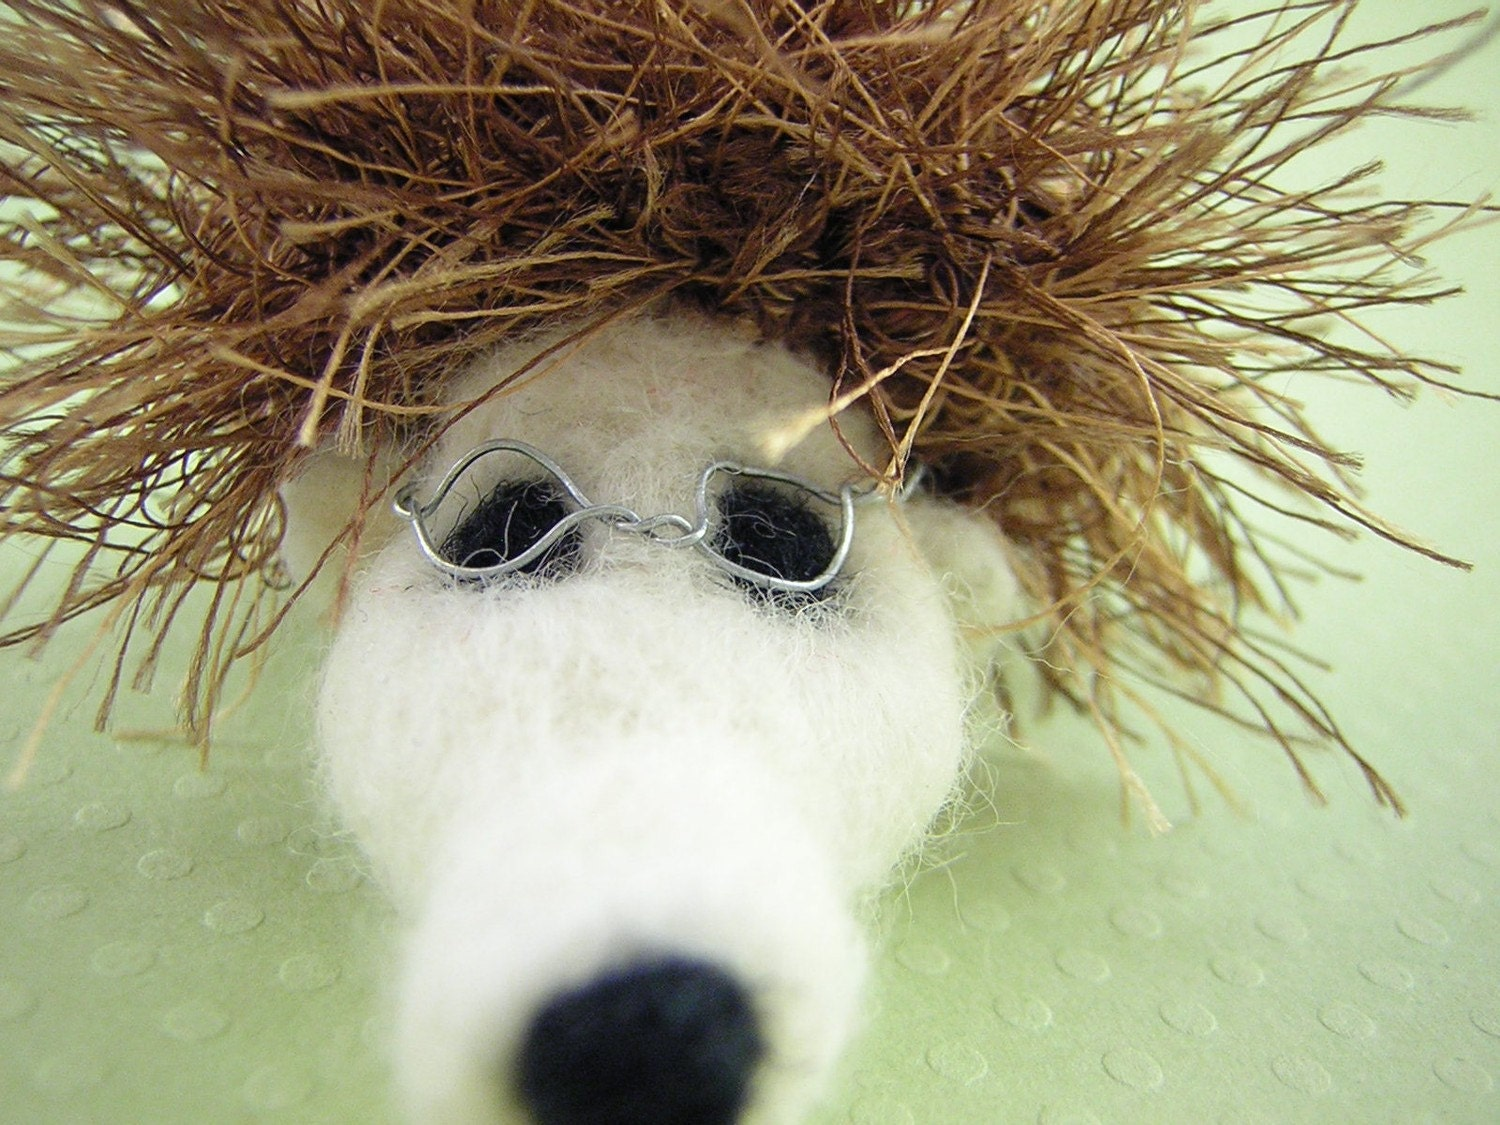 Short sighted Hedgehog with glasses